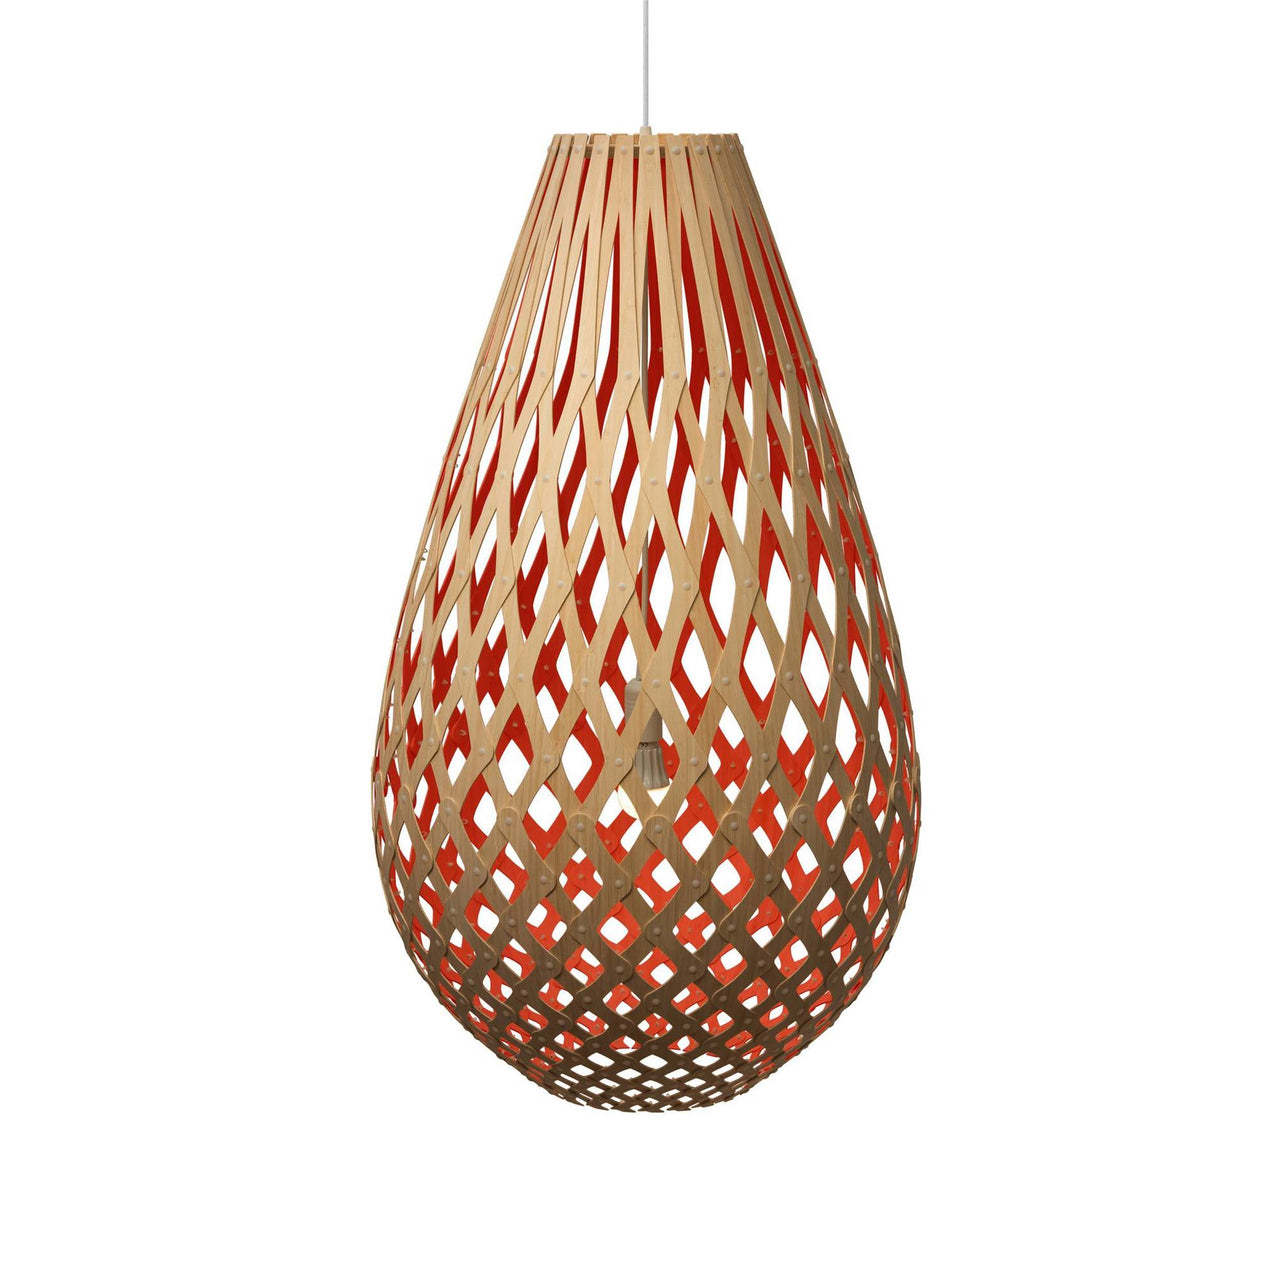 Koura Pendant Light: 1000 + Red